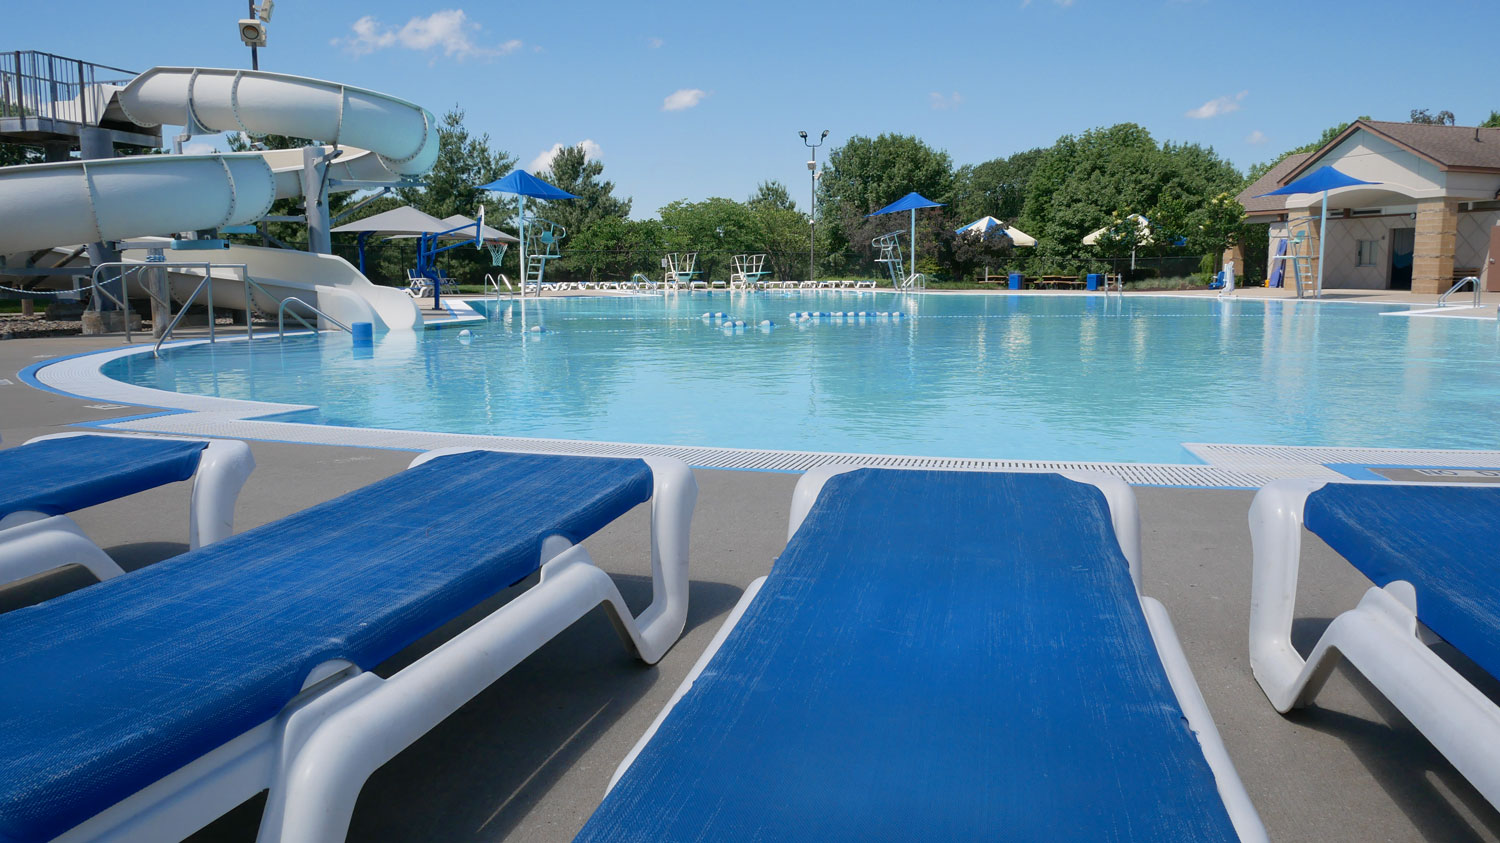 Pools City Of Overland Park Kansas